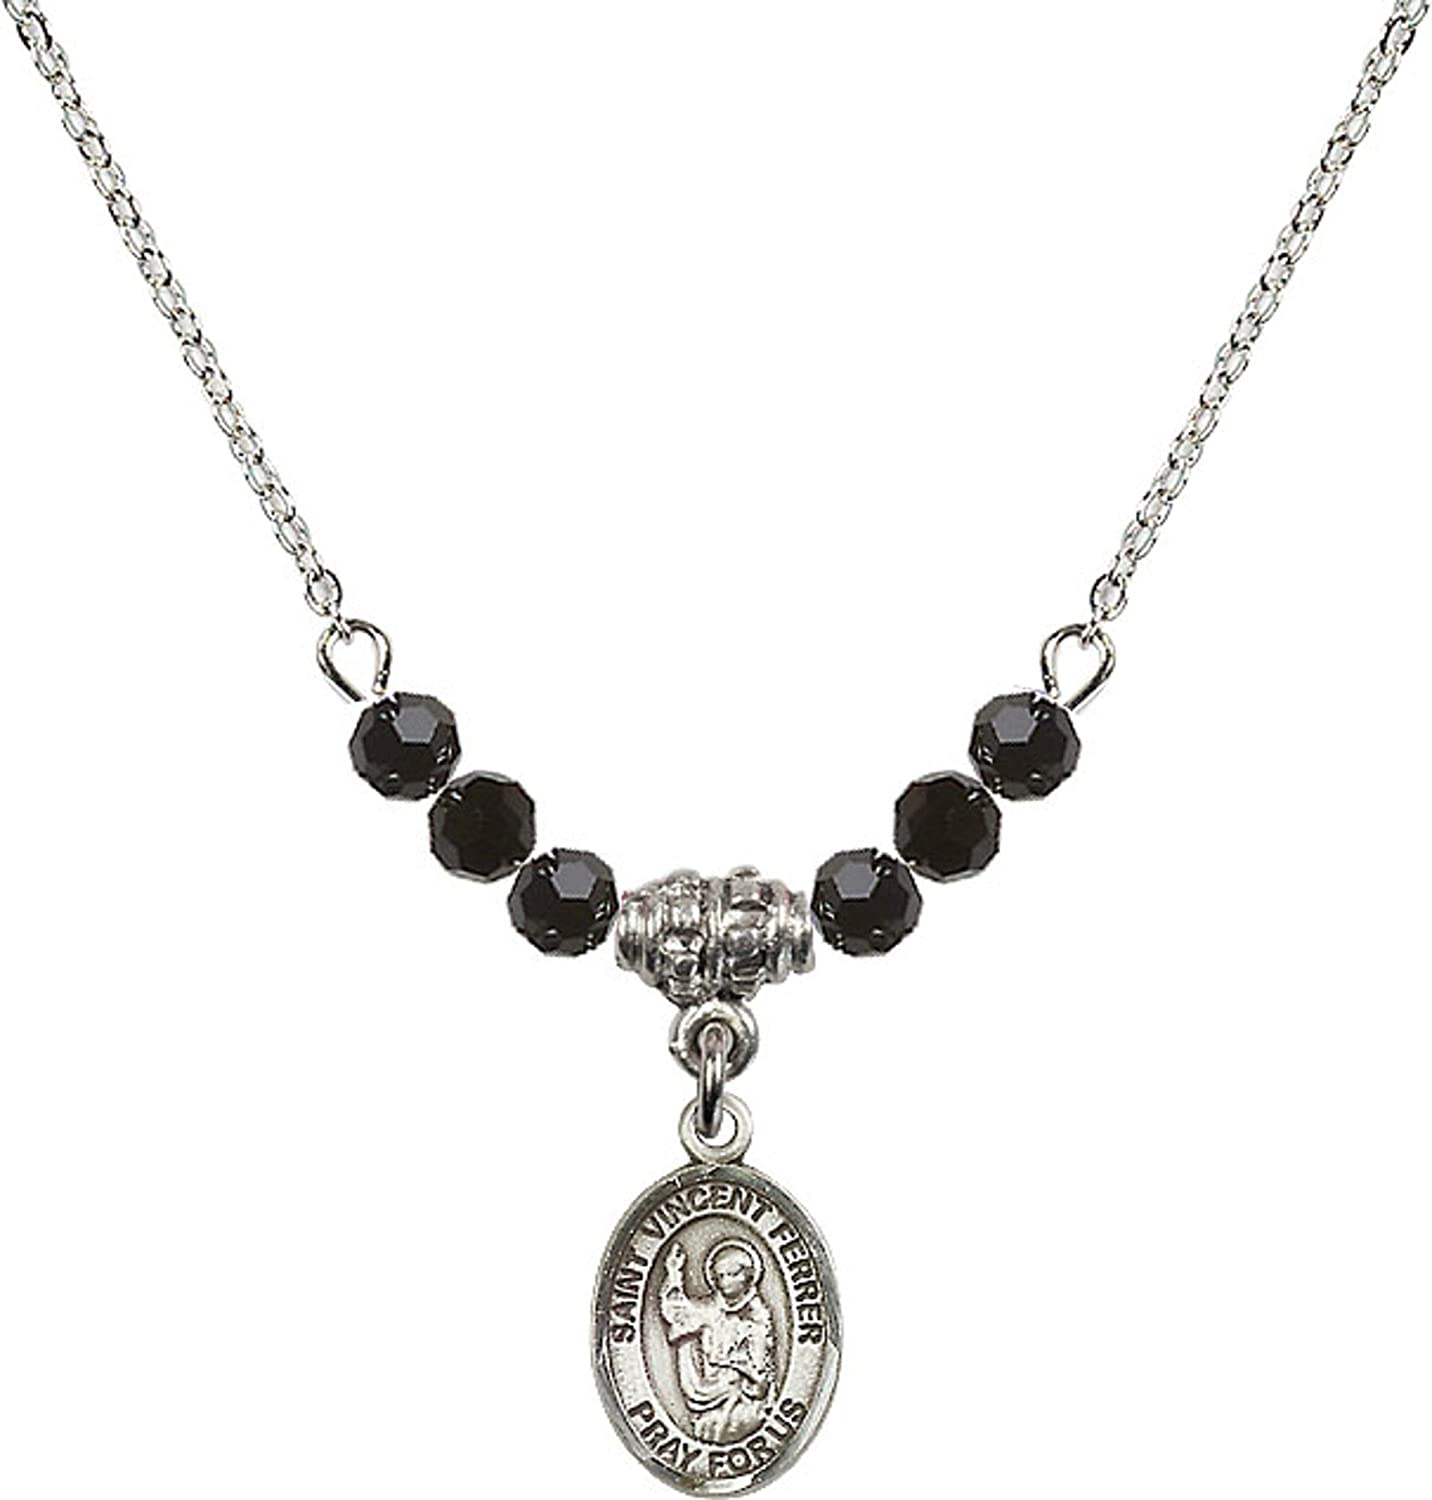 Bonyak Jewelry 18 Inch Rhodium Plated Necklace w// 4mm Jet Birth Month Stone Beads and Saint Vincent Ferrer Charm